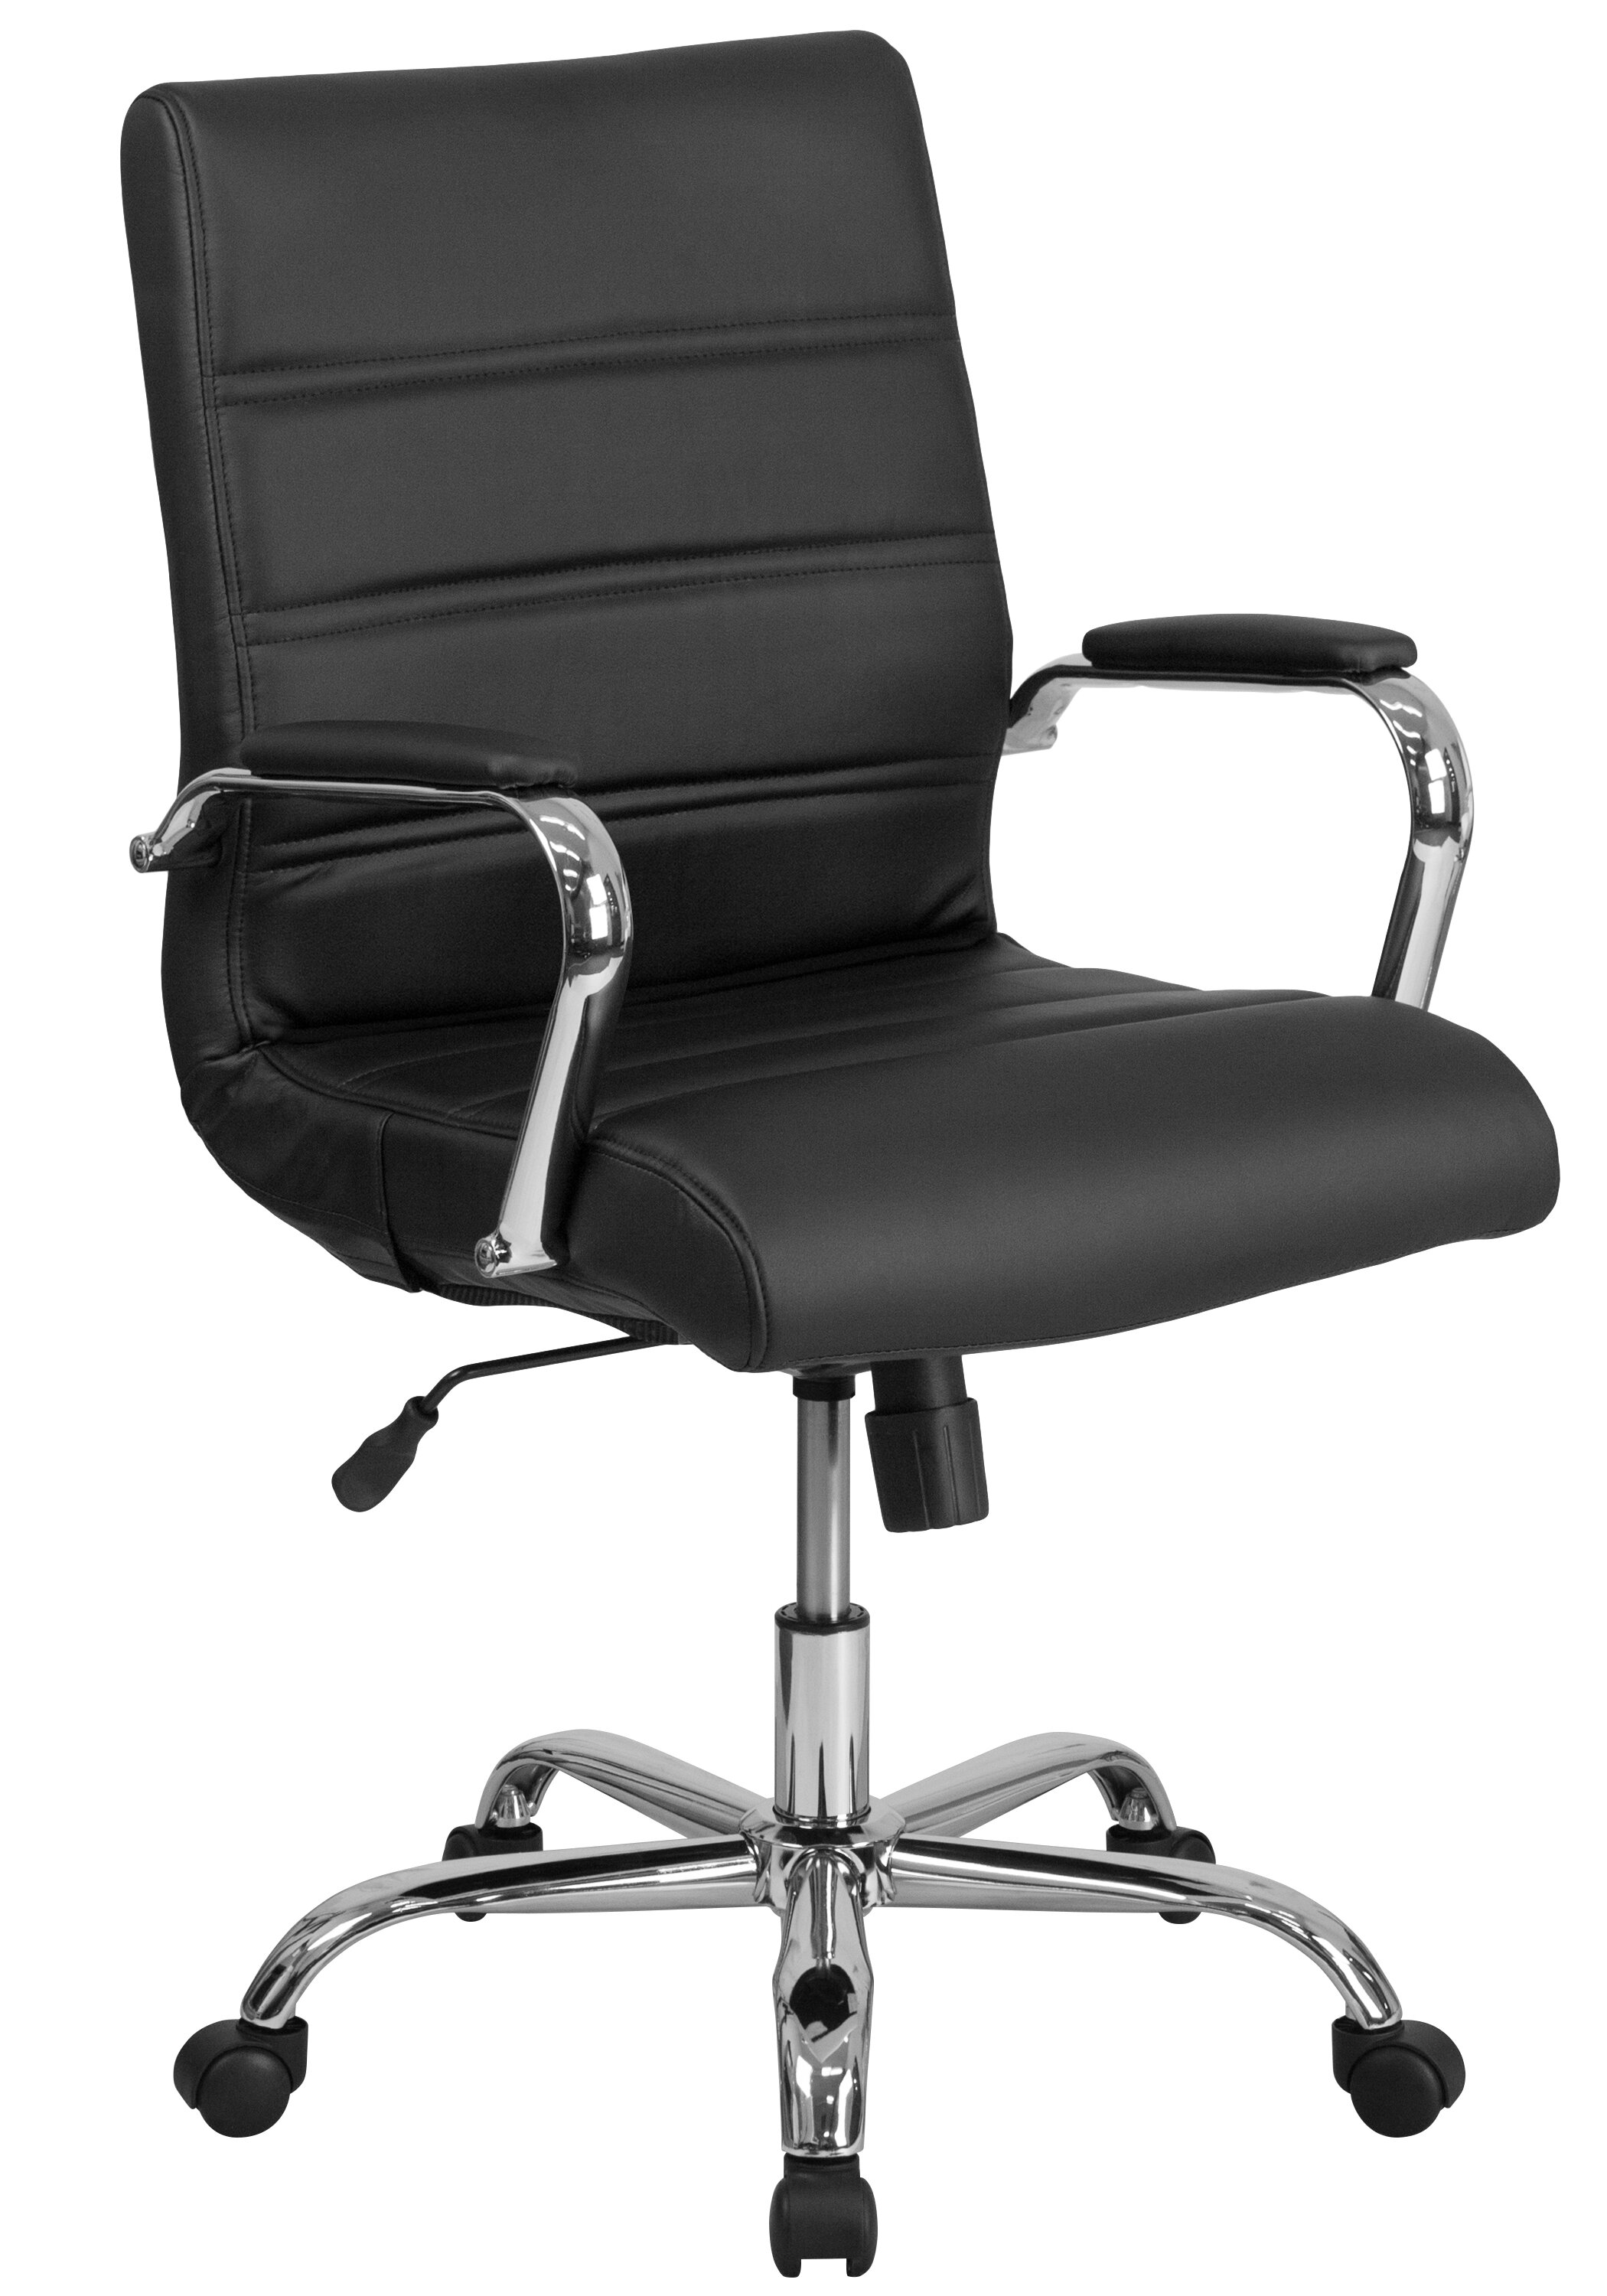 reviews downloads axia en classic archieven bma office ergonomics chair